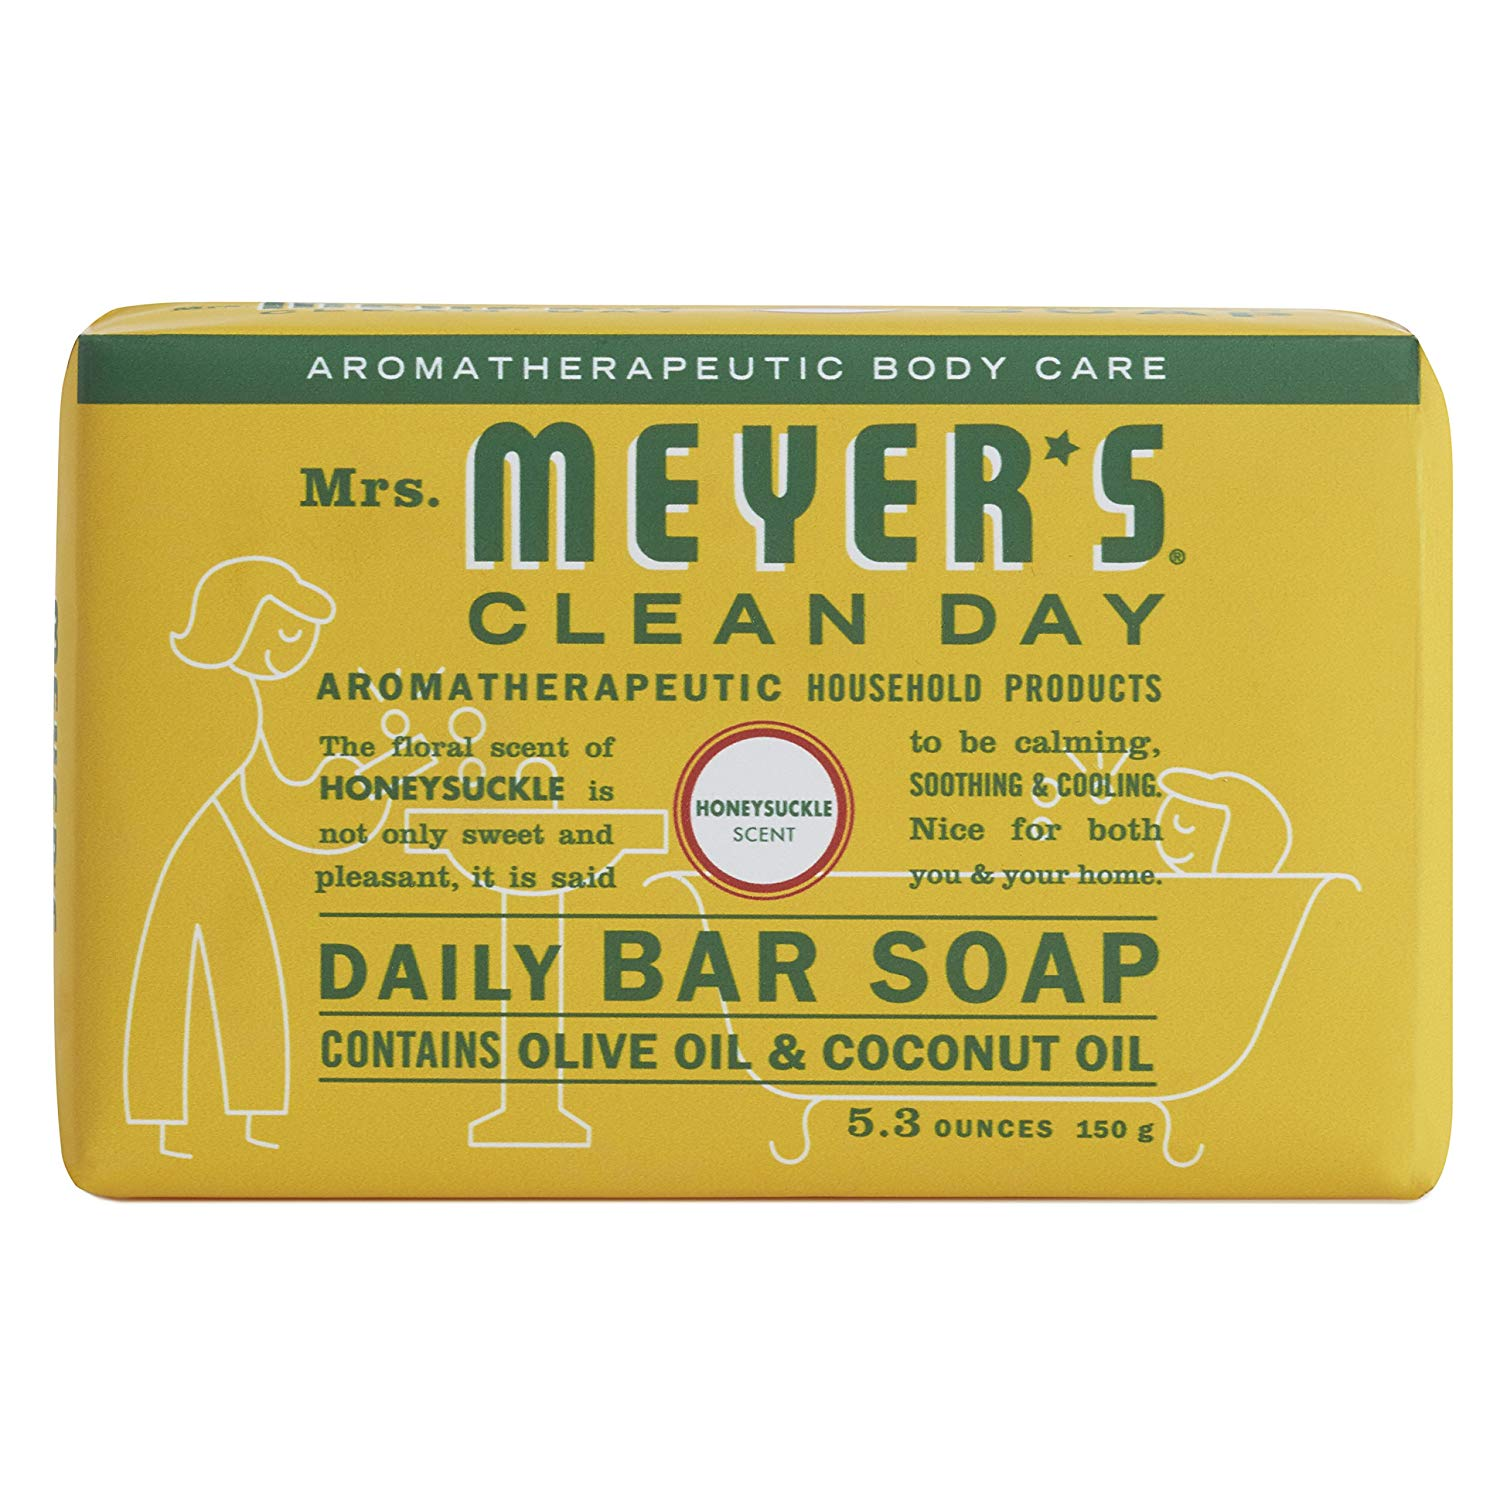 meyer's clean day bar soap